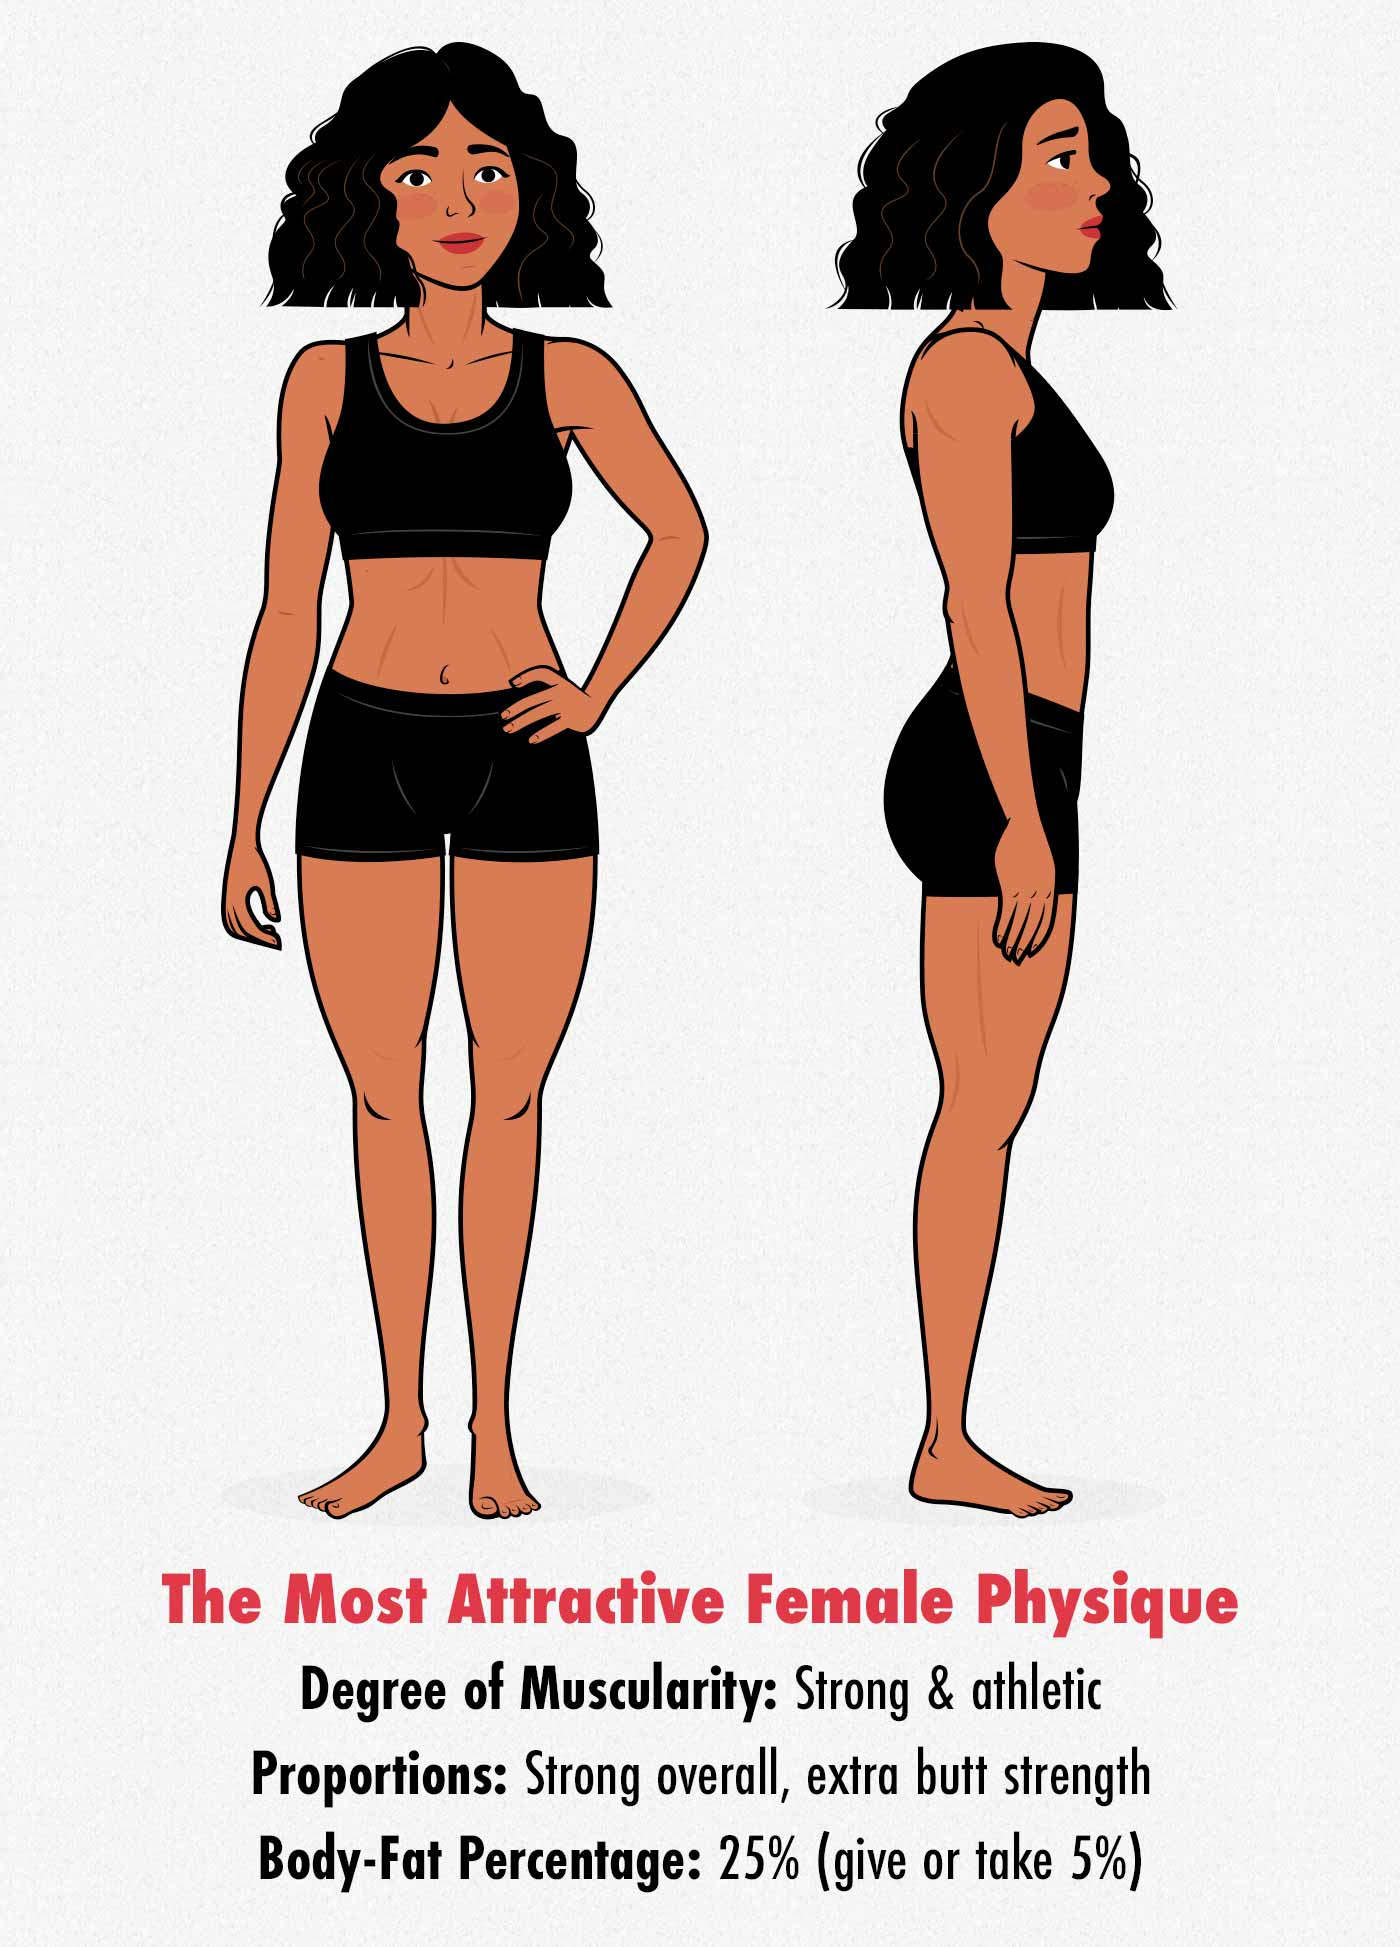 Survey results showing that men find women who are fit, healthy, strong, and athletic as the most attractive.